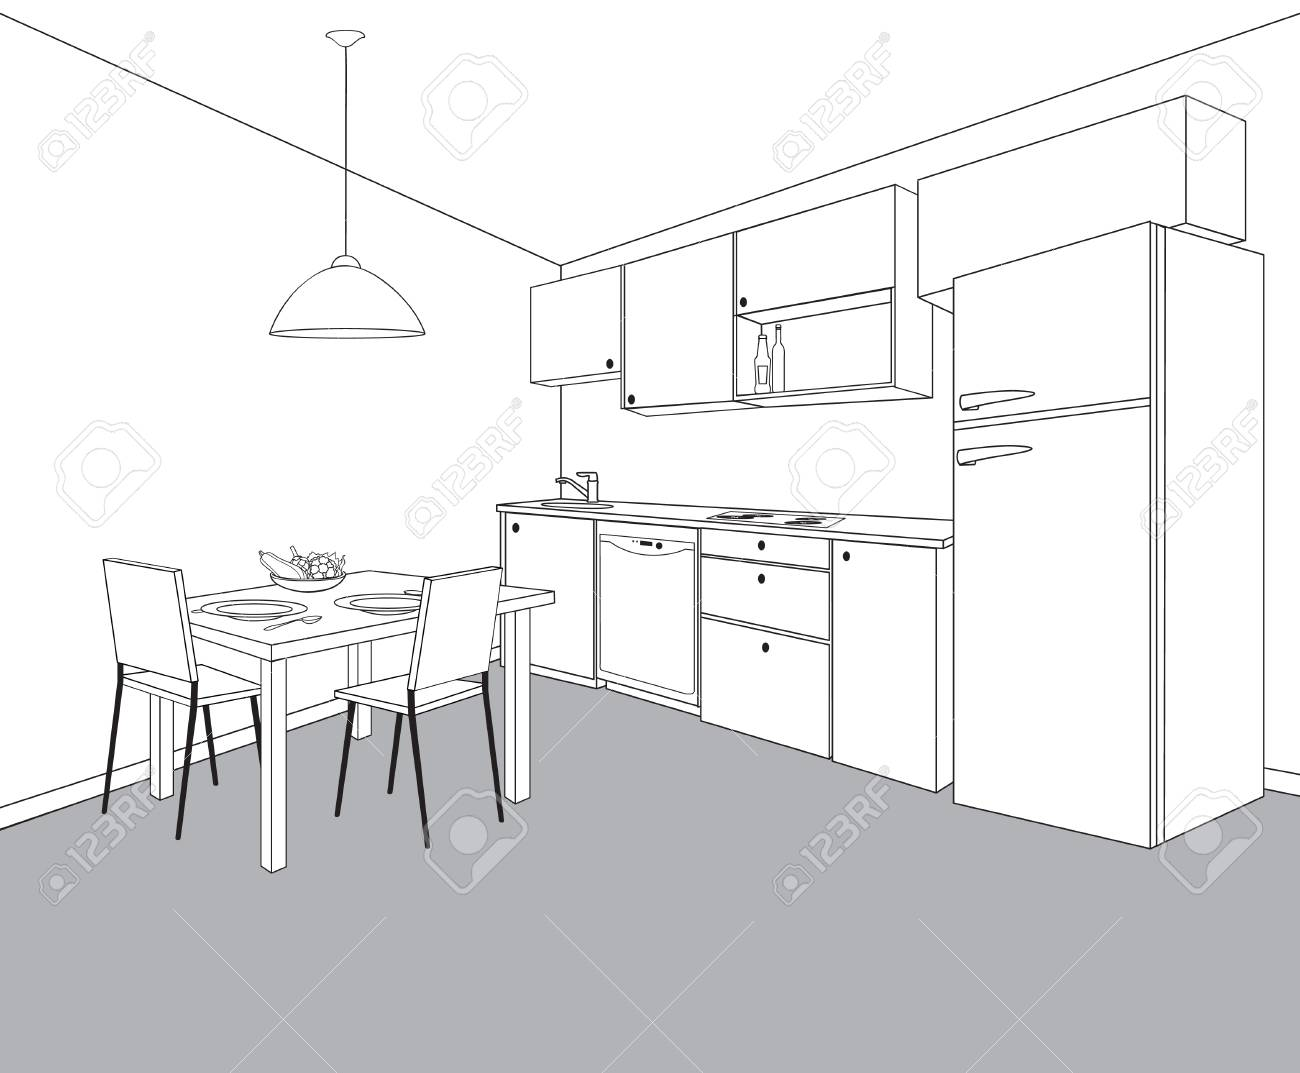 Interior sketch of kitchen room. Outline blueprint design of kitchen with modern furniture and dining  sc 1 st  123RF.com & Interior Sketch Of Kitchen Room. Outline Blueprint Design Of ...